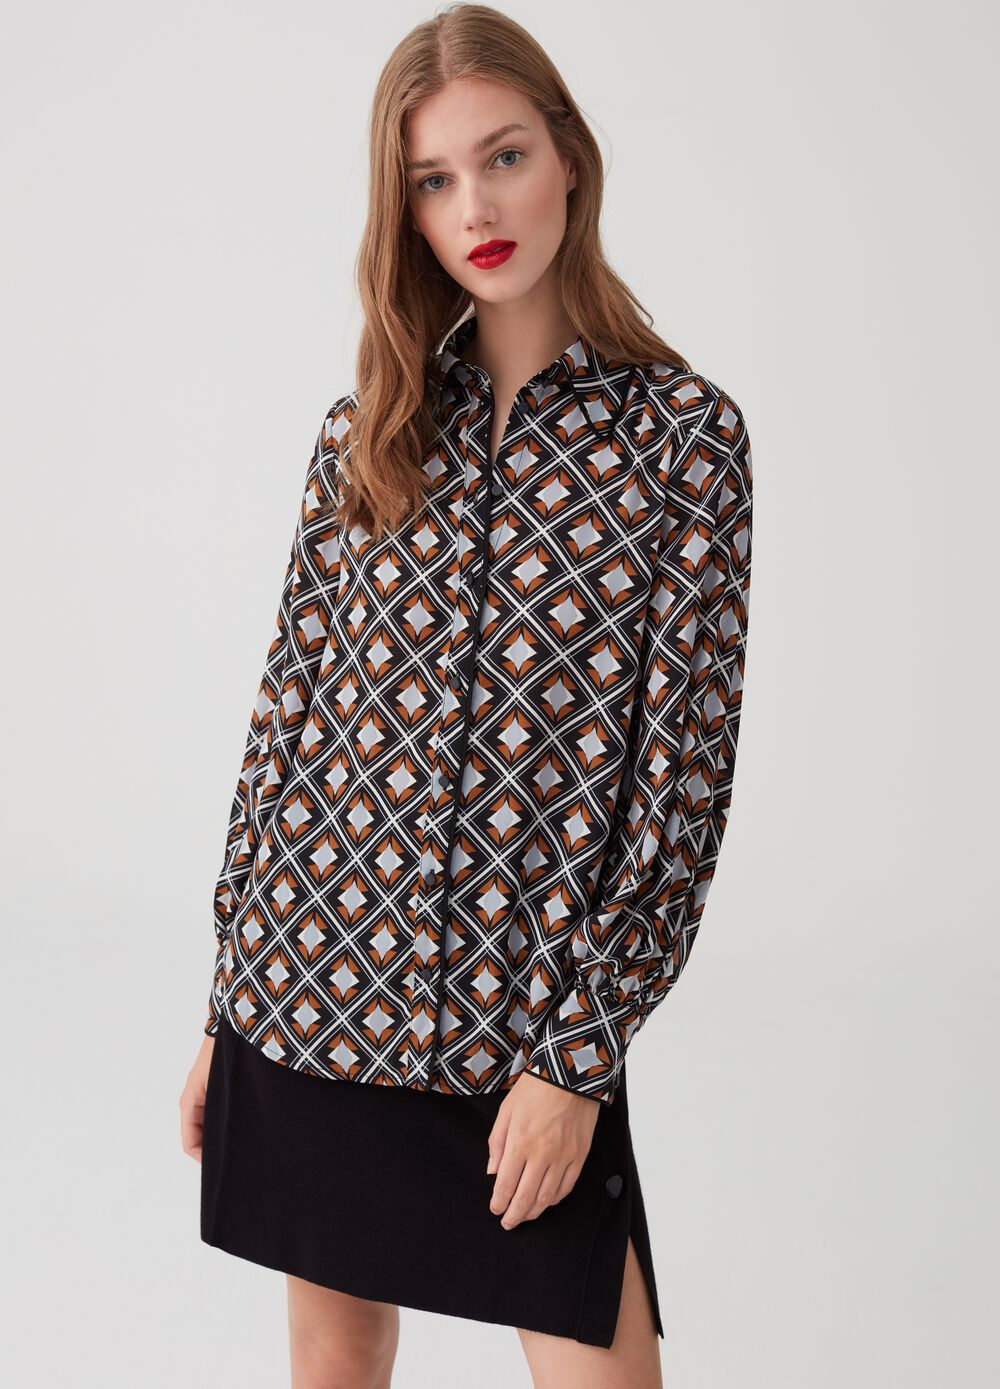 Blouse with contrast geometric trim